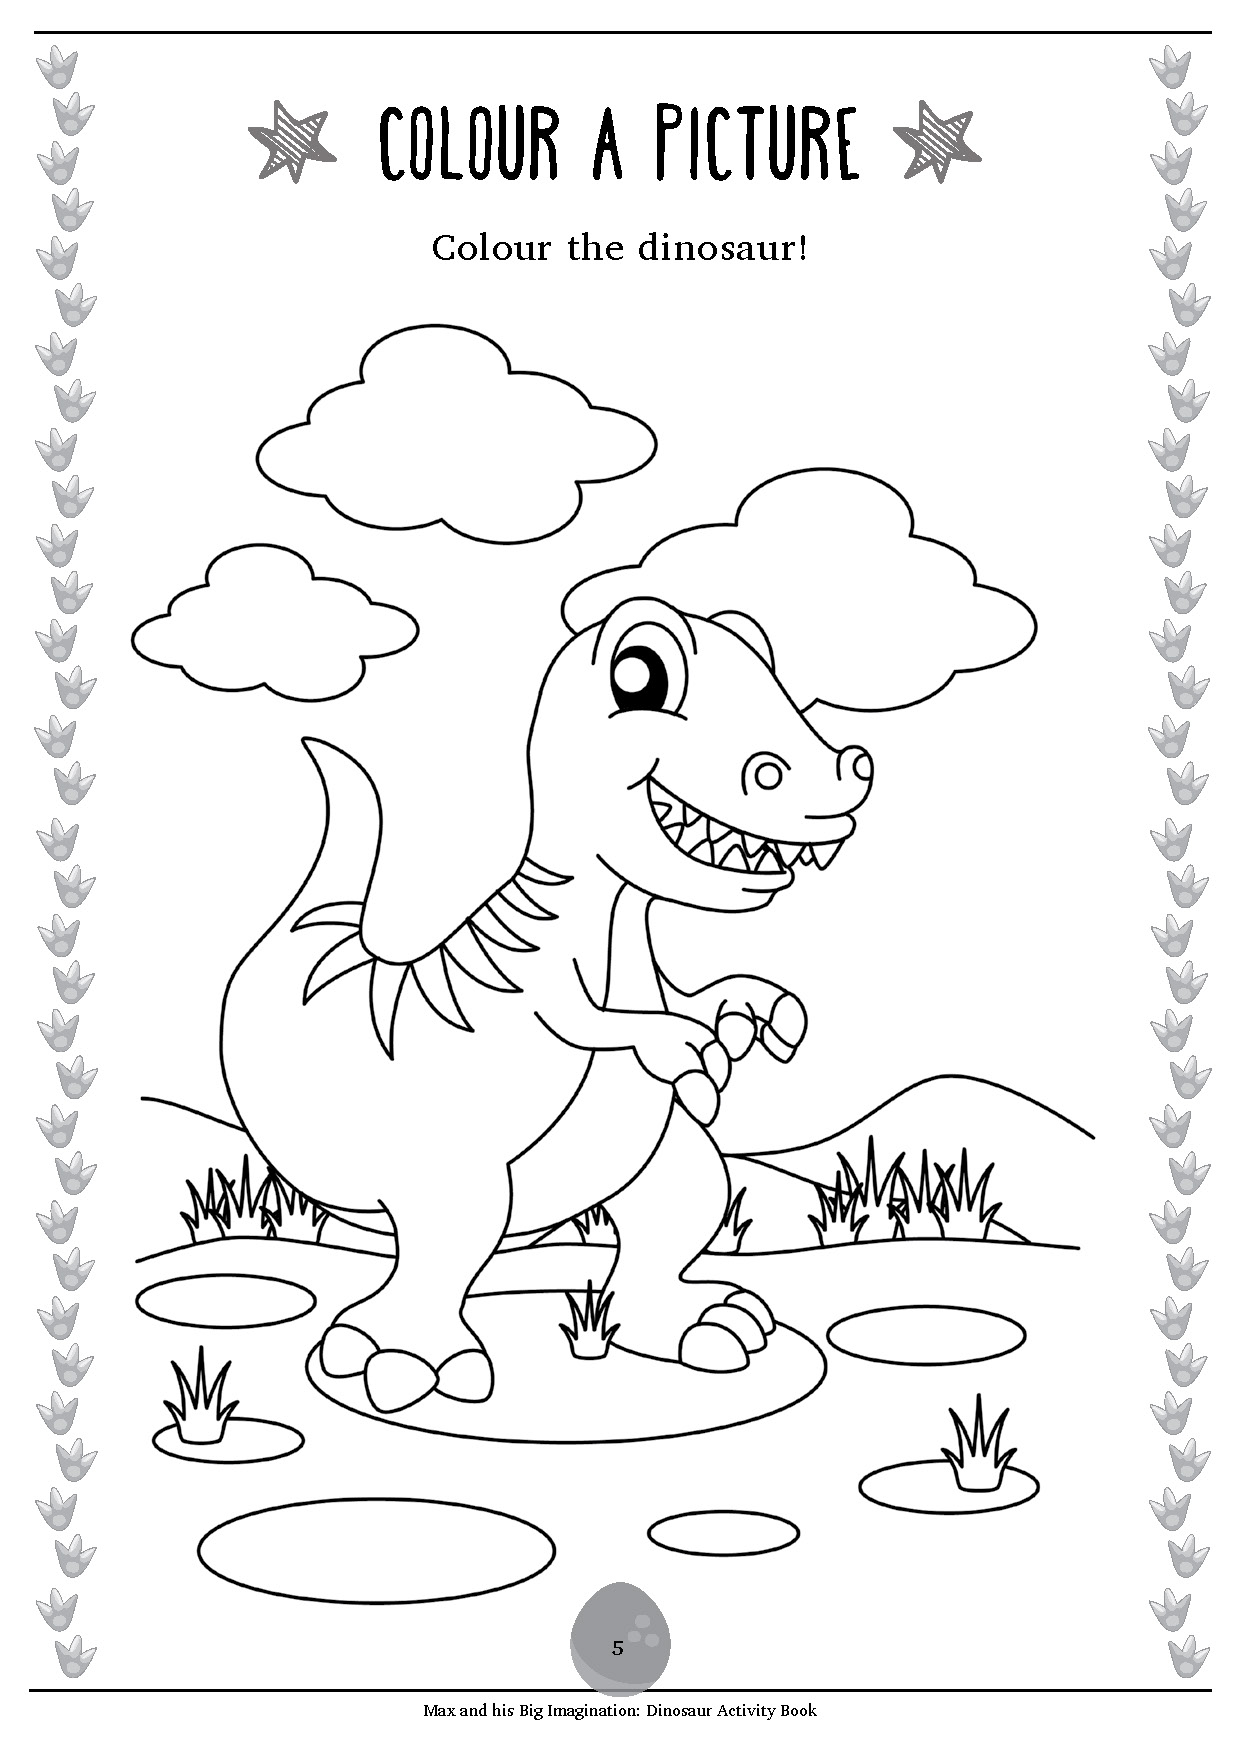 Max Free Activity Worksheet: Dinosaur Activity Book Sample ...